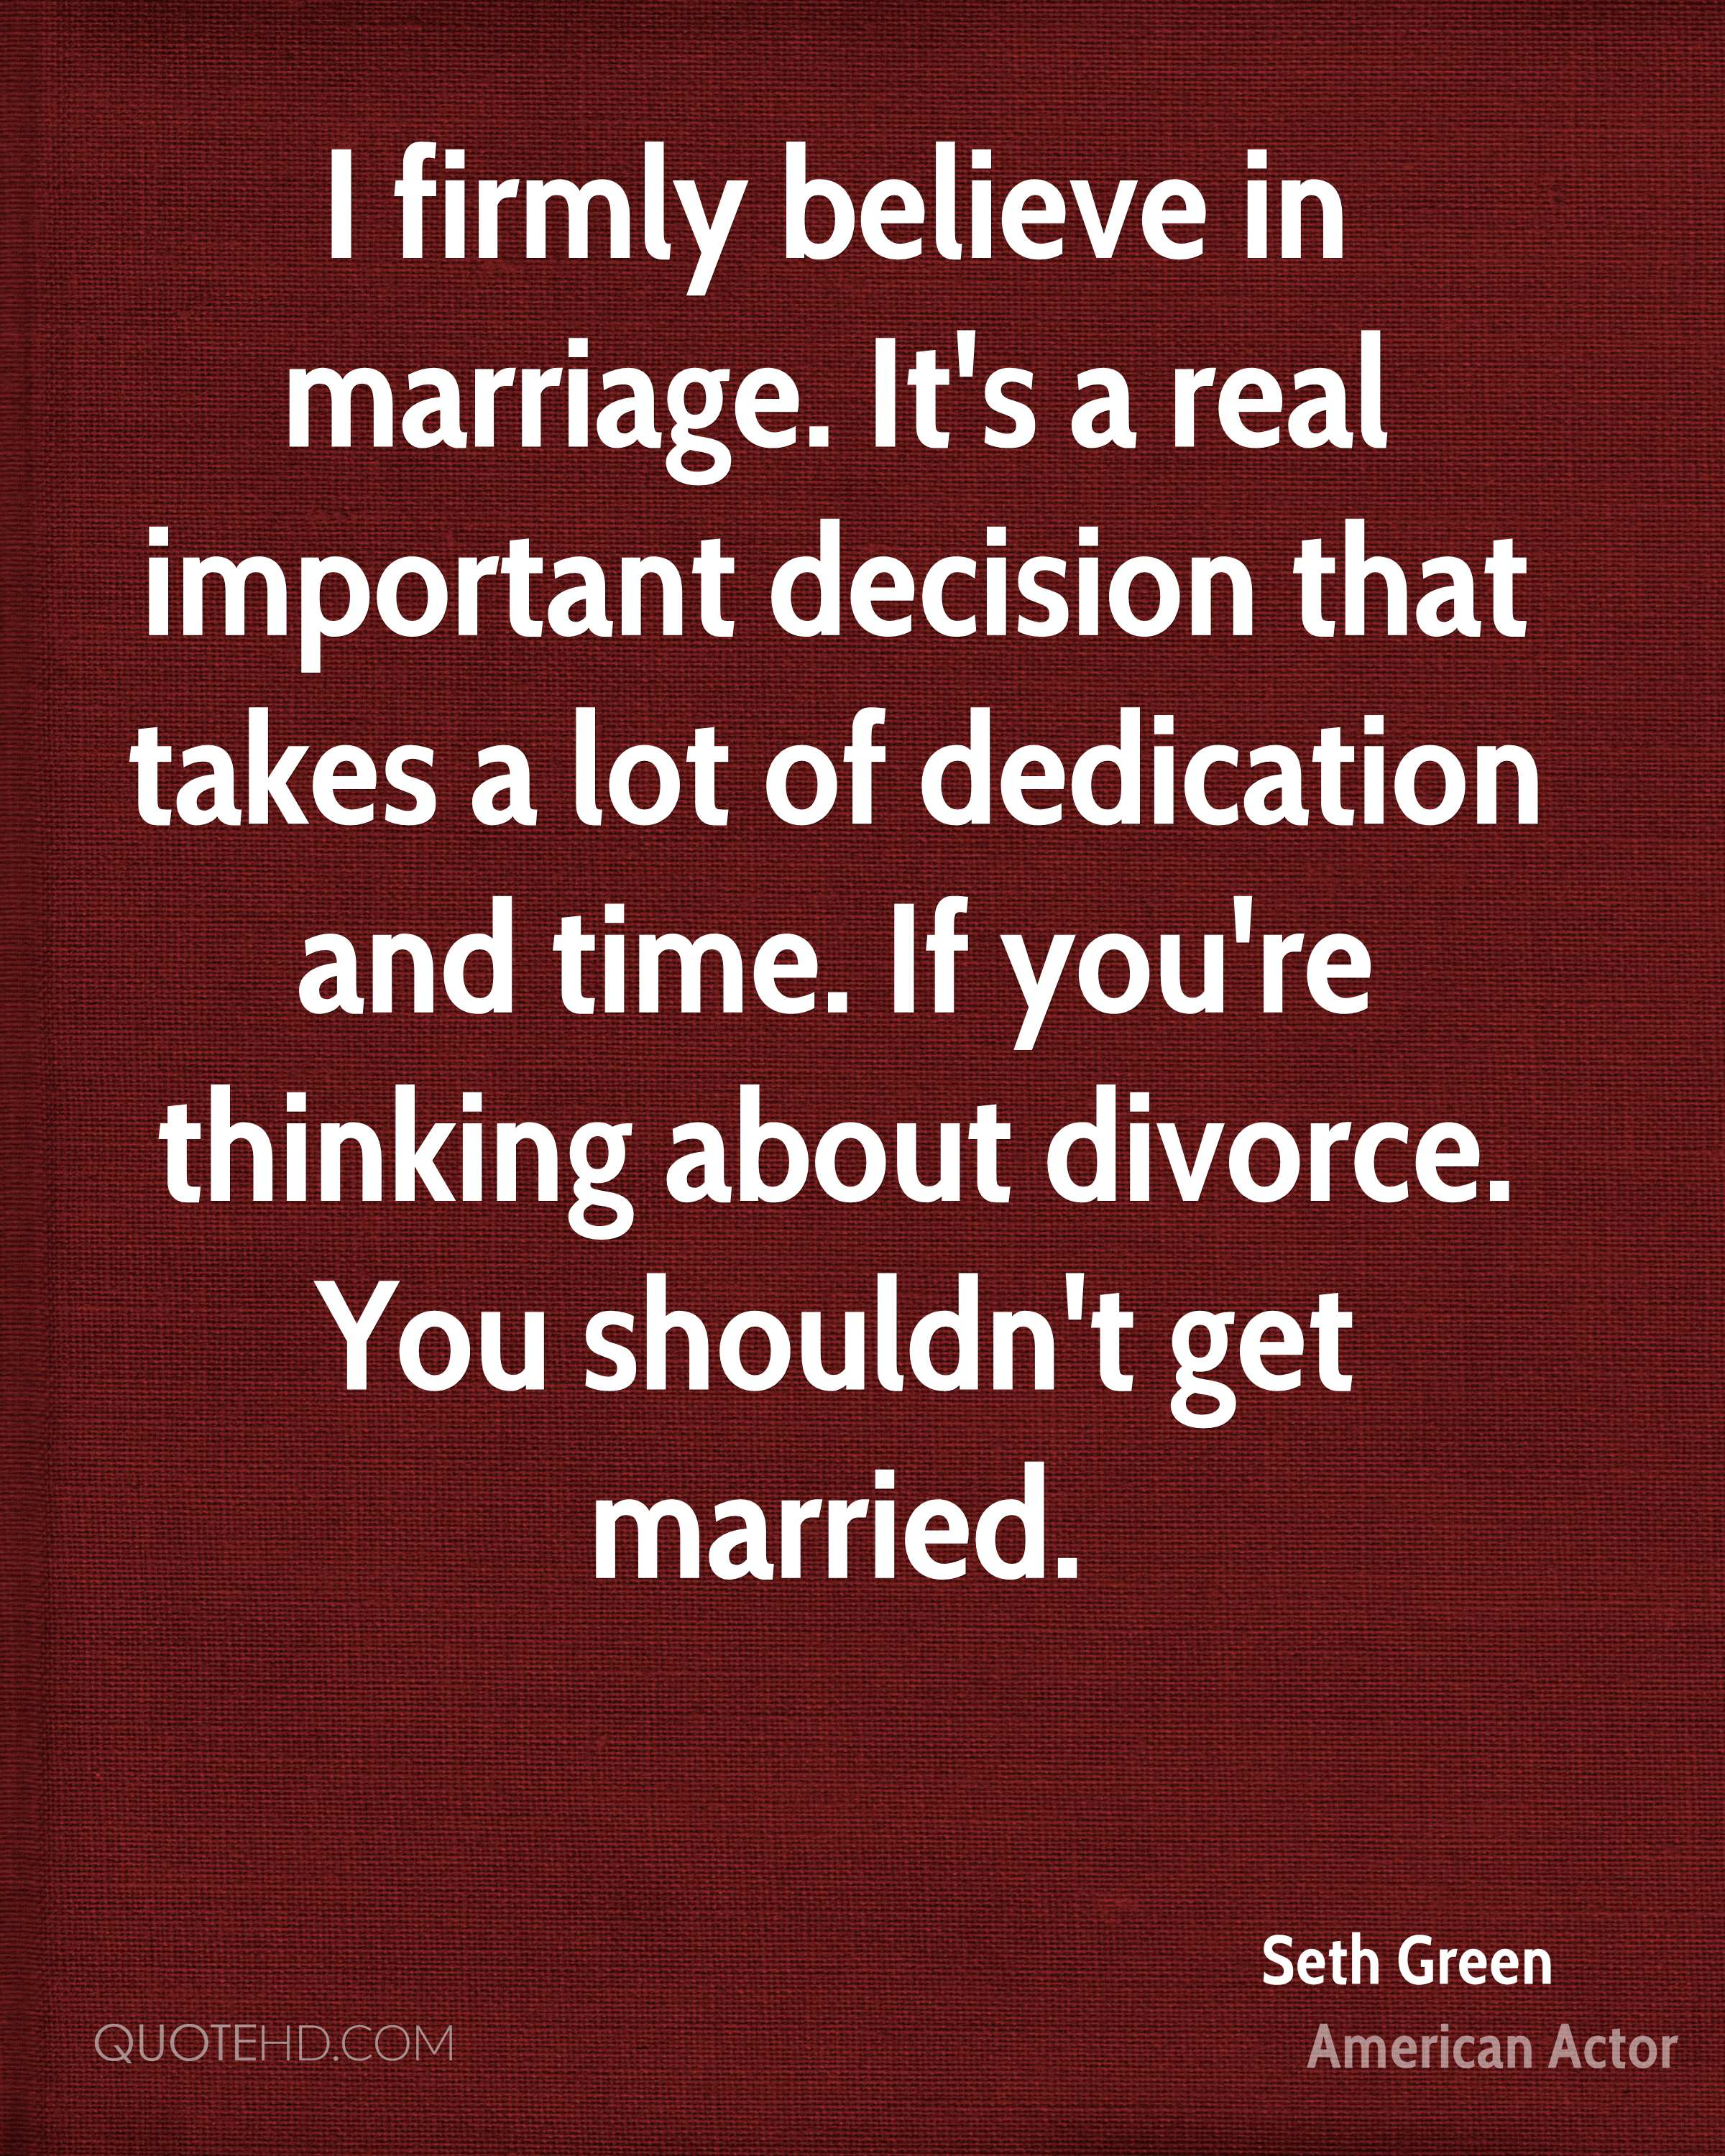 I firmly believe in marriage. It's a real important decision that takes a lot of dedication and time. If you're thinking about divorce. You shouldn't get married.